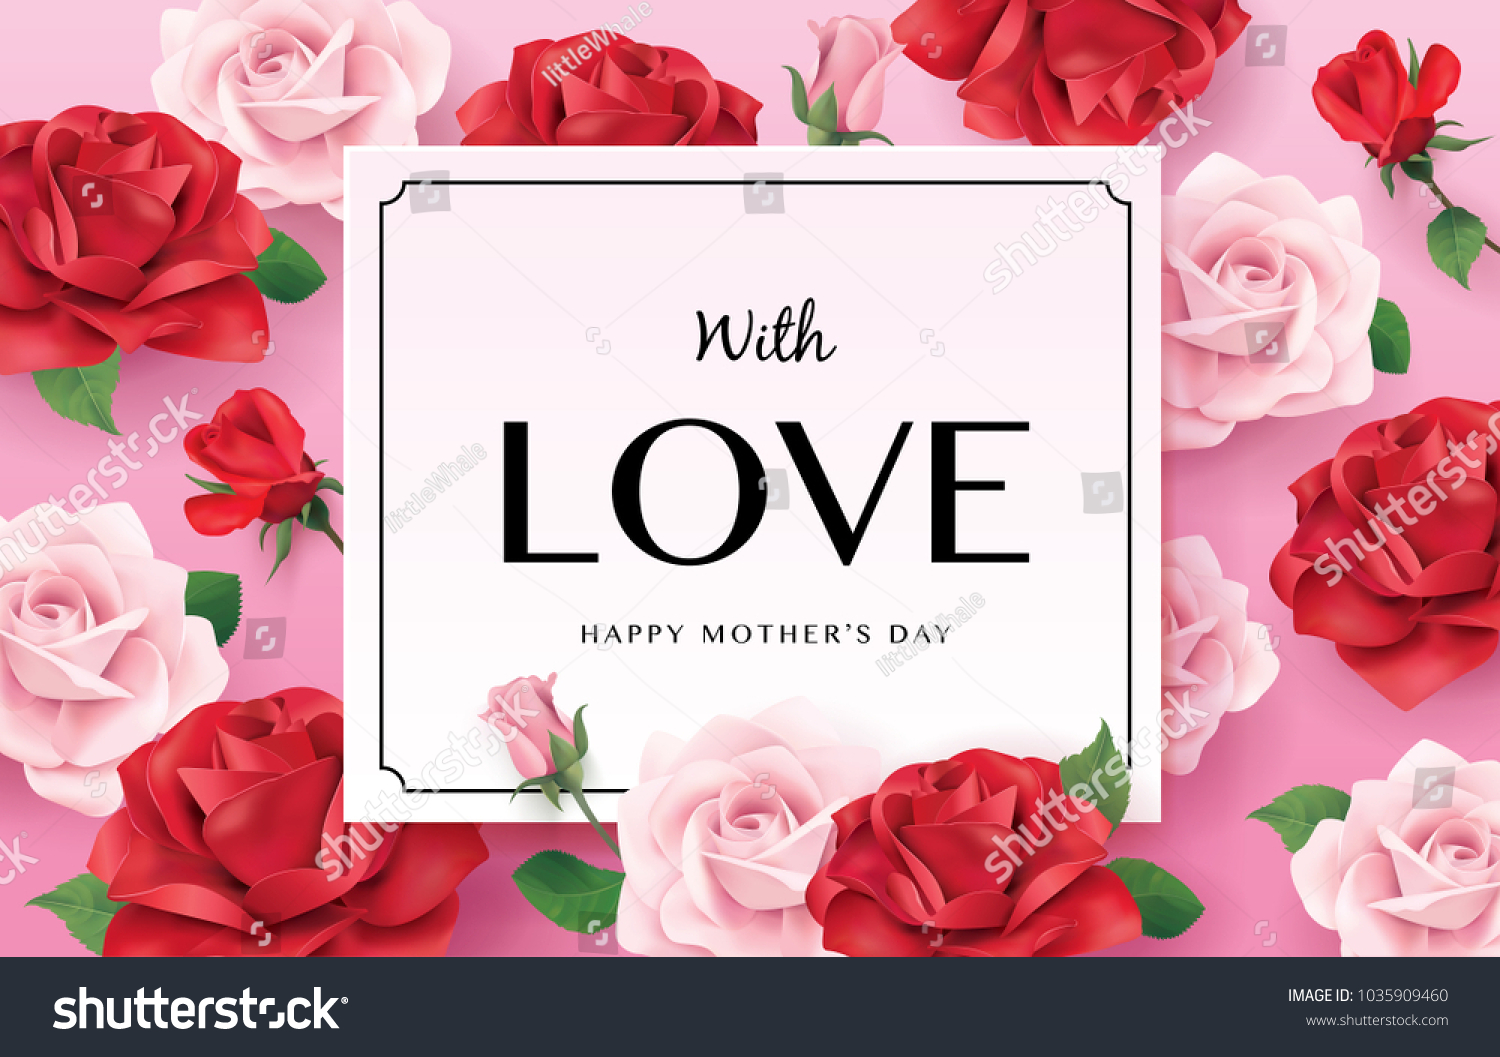 Happy Mothers Day Greetings Design Roses Stock Vector Royalty Free